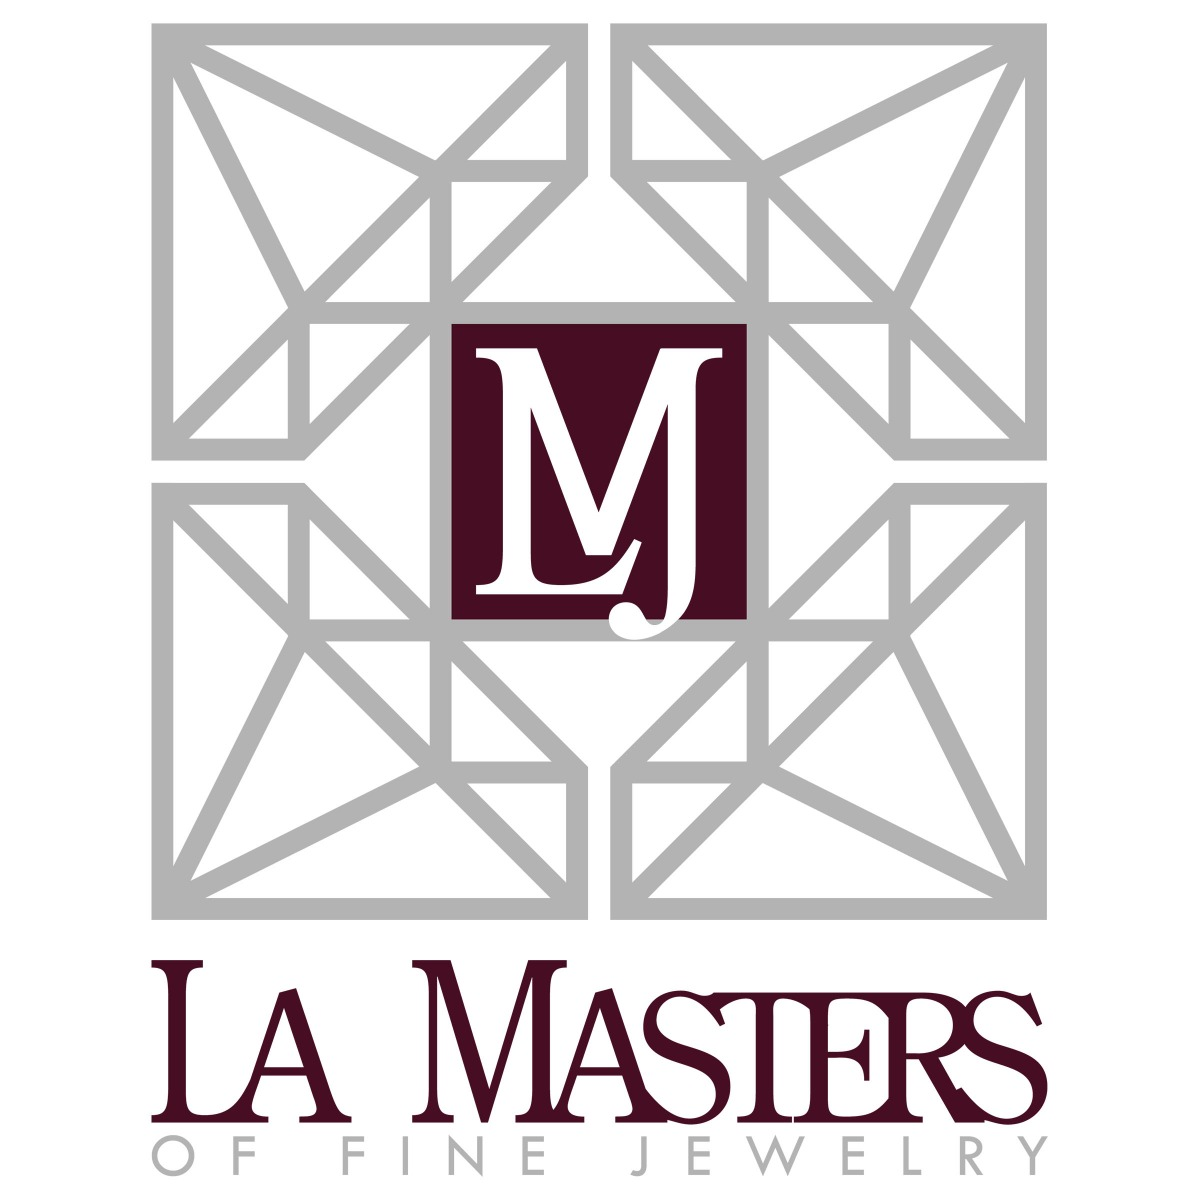 Welcome to La Masters of Fine Jewelry